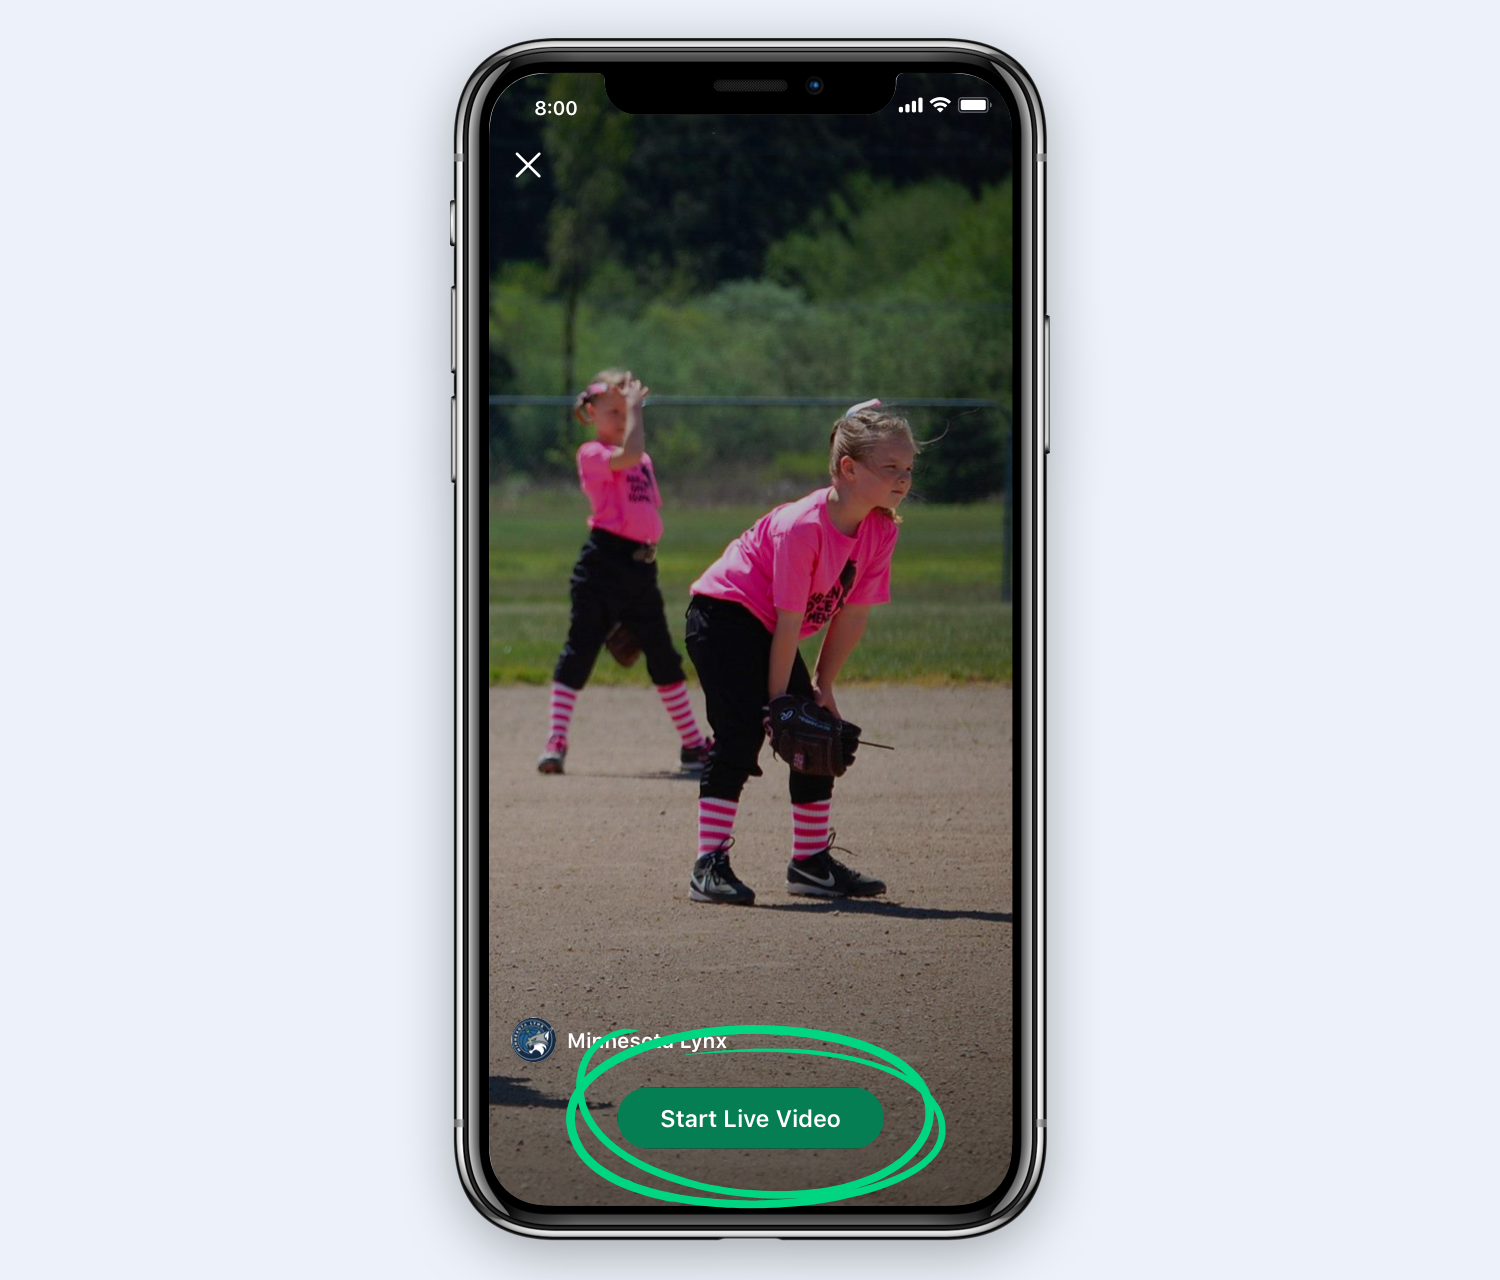 iOS-video-start_2x.png